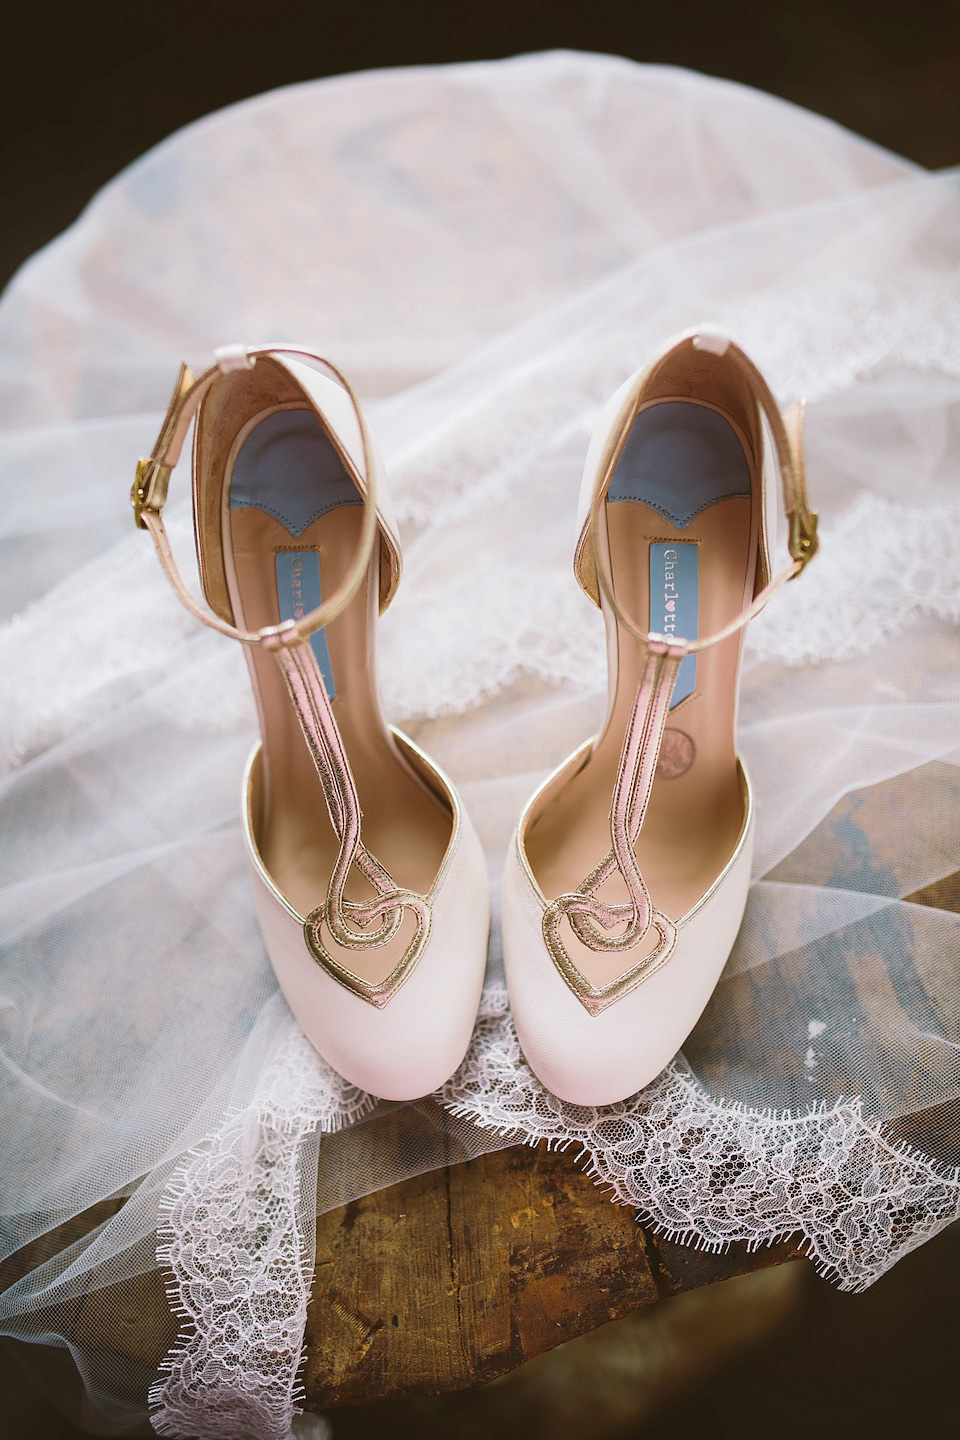 fcf77b723a90 wpid Charlotte Mills wedding shoes - A Silver Sixpence in her Shoe - First  Look at